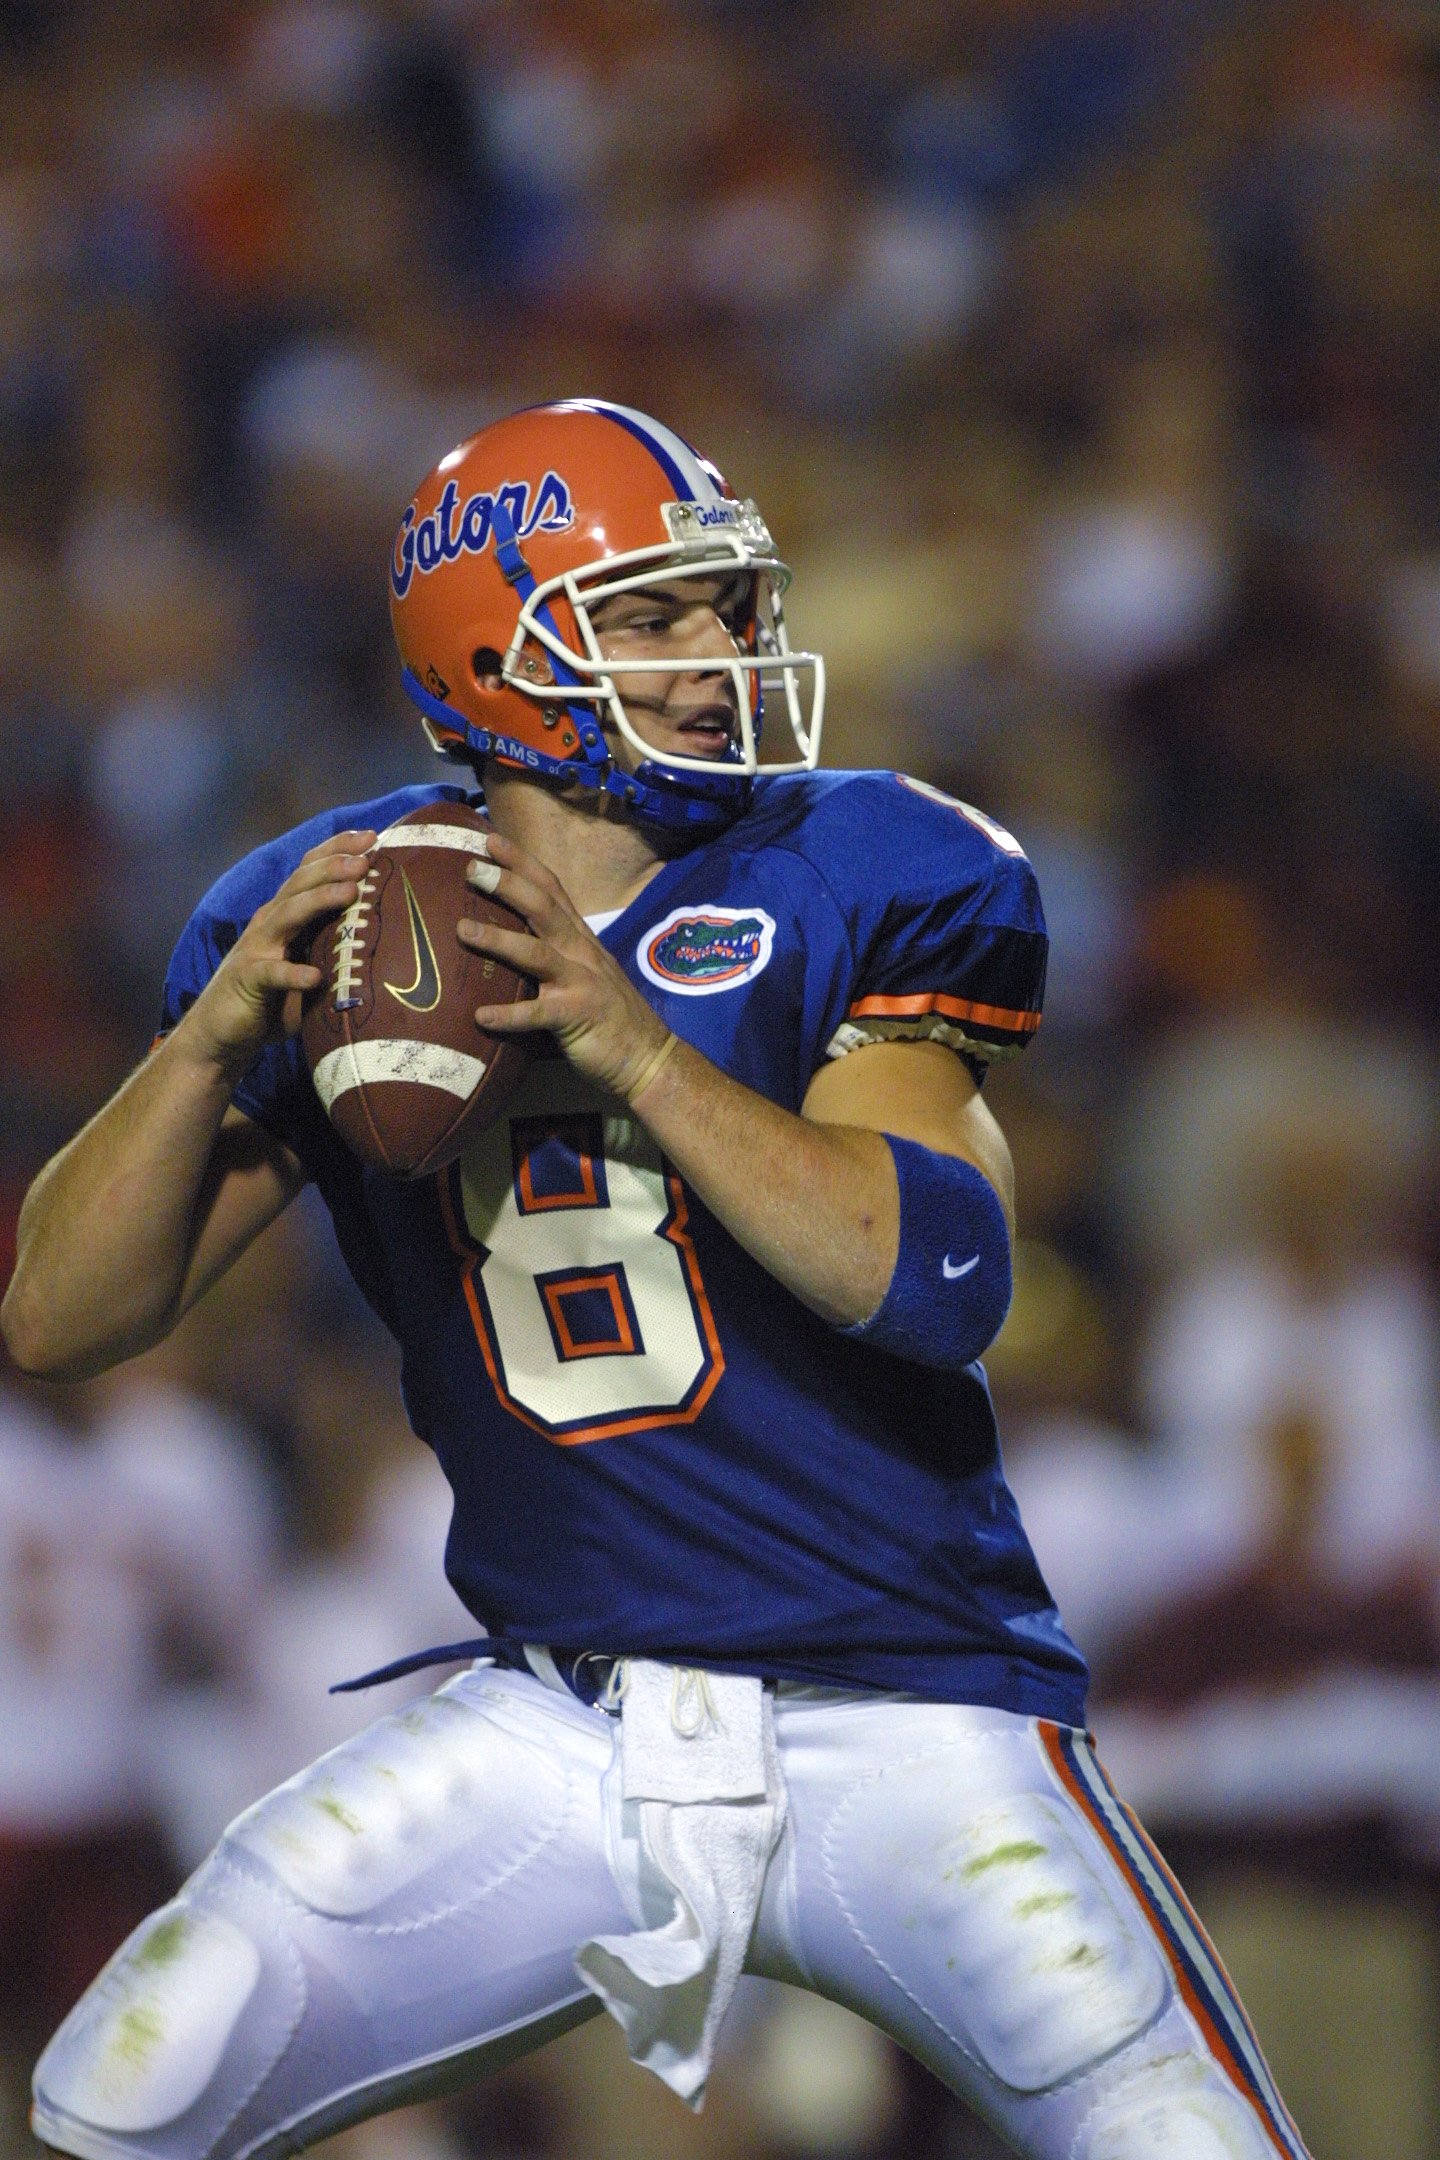 17 Nov 2001:  Florida Gator quarterback Rex Grossman, #8 drops back to pass against Florida State at Florida Field in Gainesville, Florida. Florida won 31-13. DIGITAL IMAGE. Mandatory Credit: Scott Halleran/Getty Images